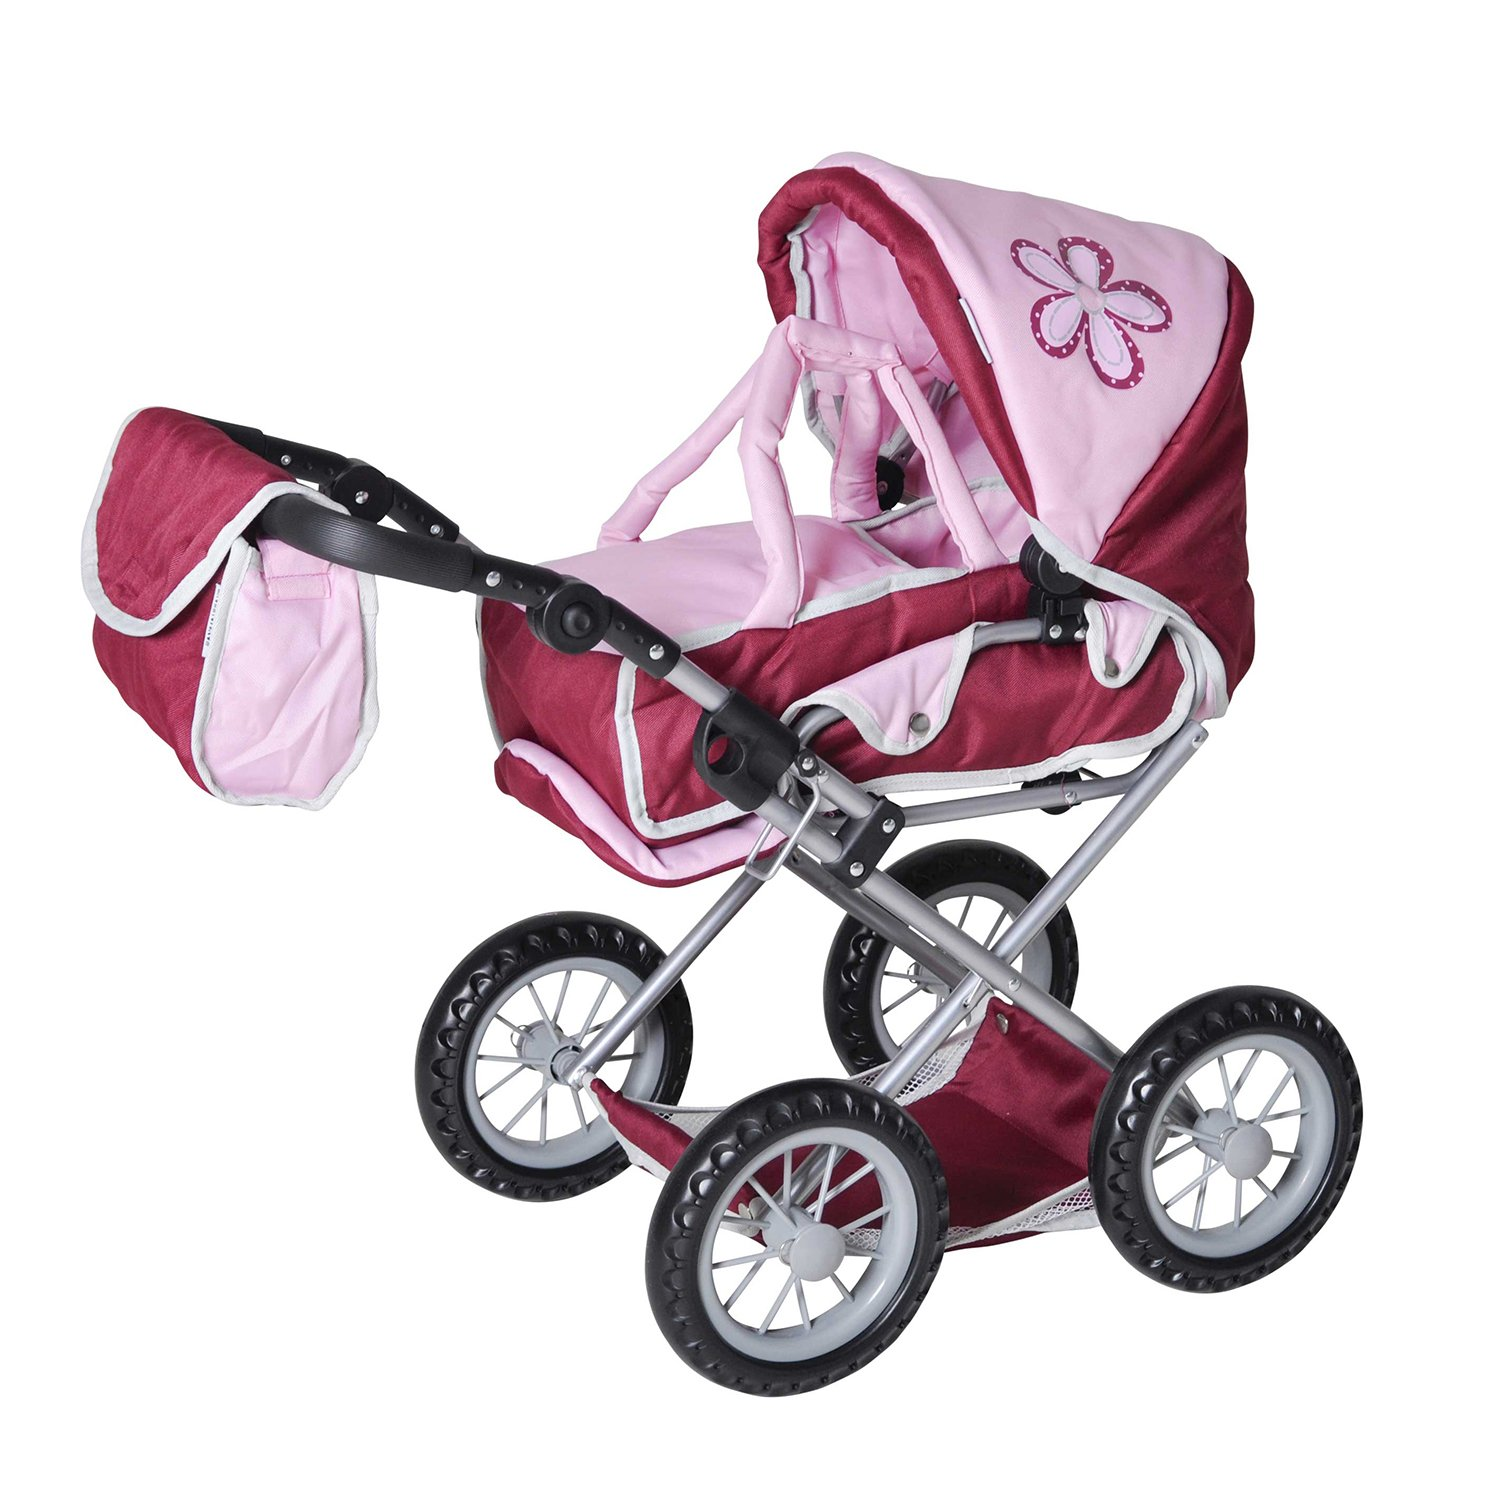 Knorrtoys Knorrtoys Knorrtoys 63153 - Puppenkombi Ruby - ROT and rose f7322b